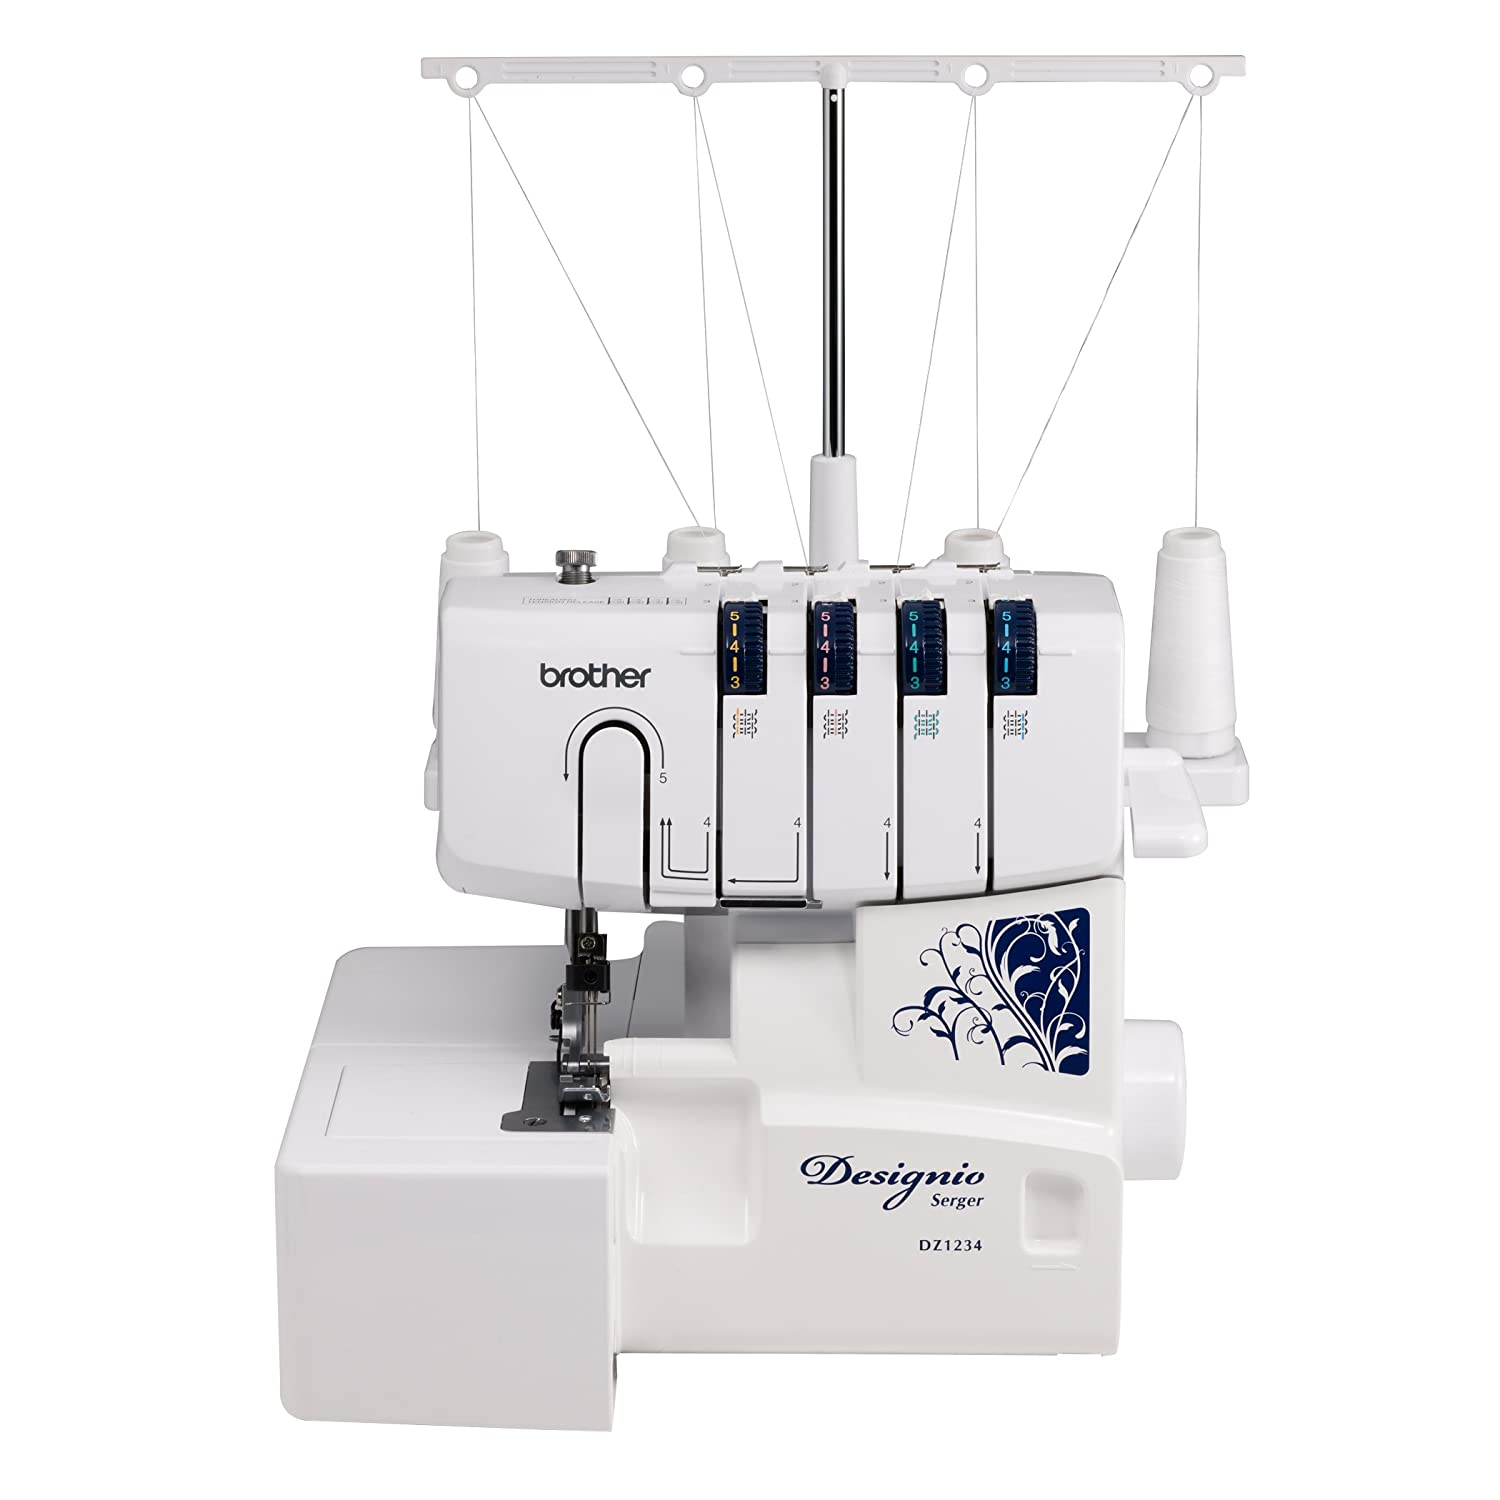 Top 6 Best Serger Sewing Machine (2020 Reviews & Buying Guide) 3